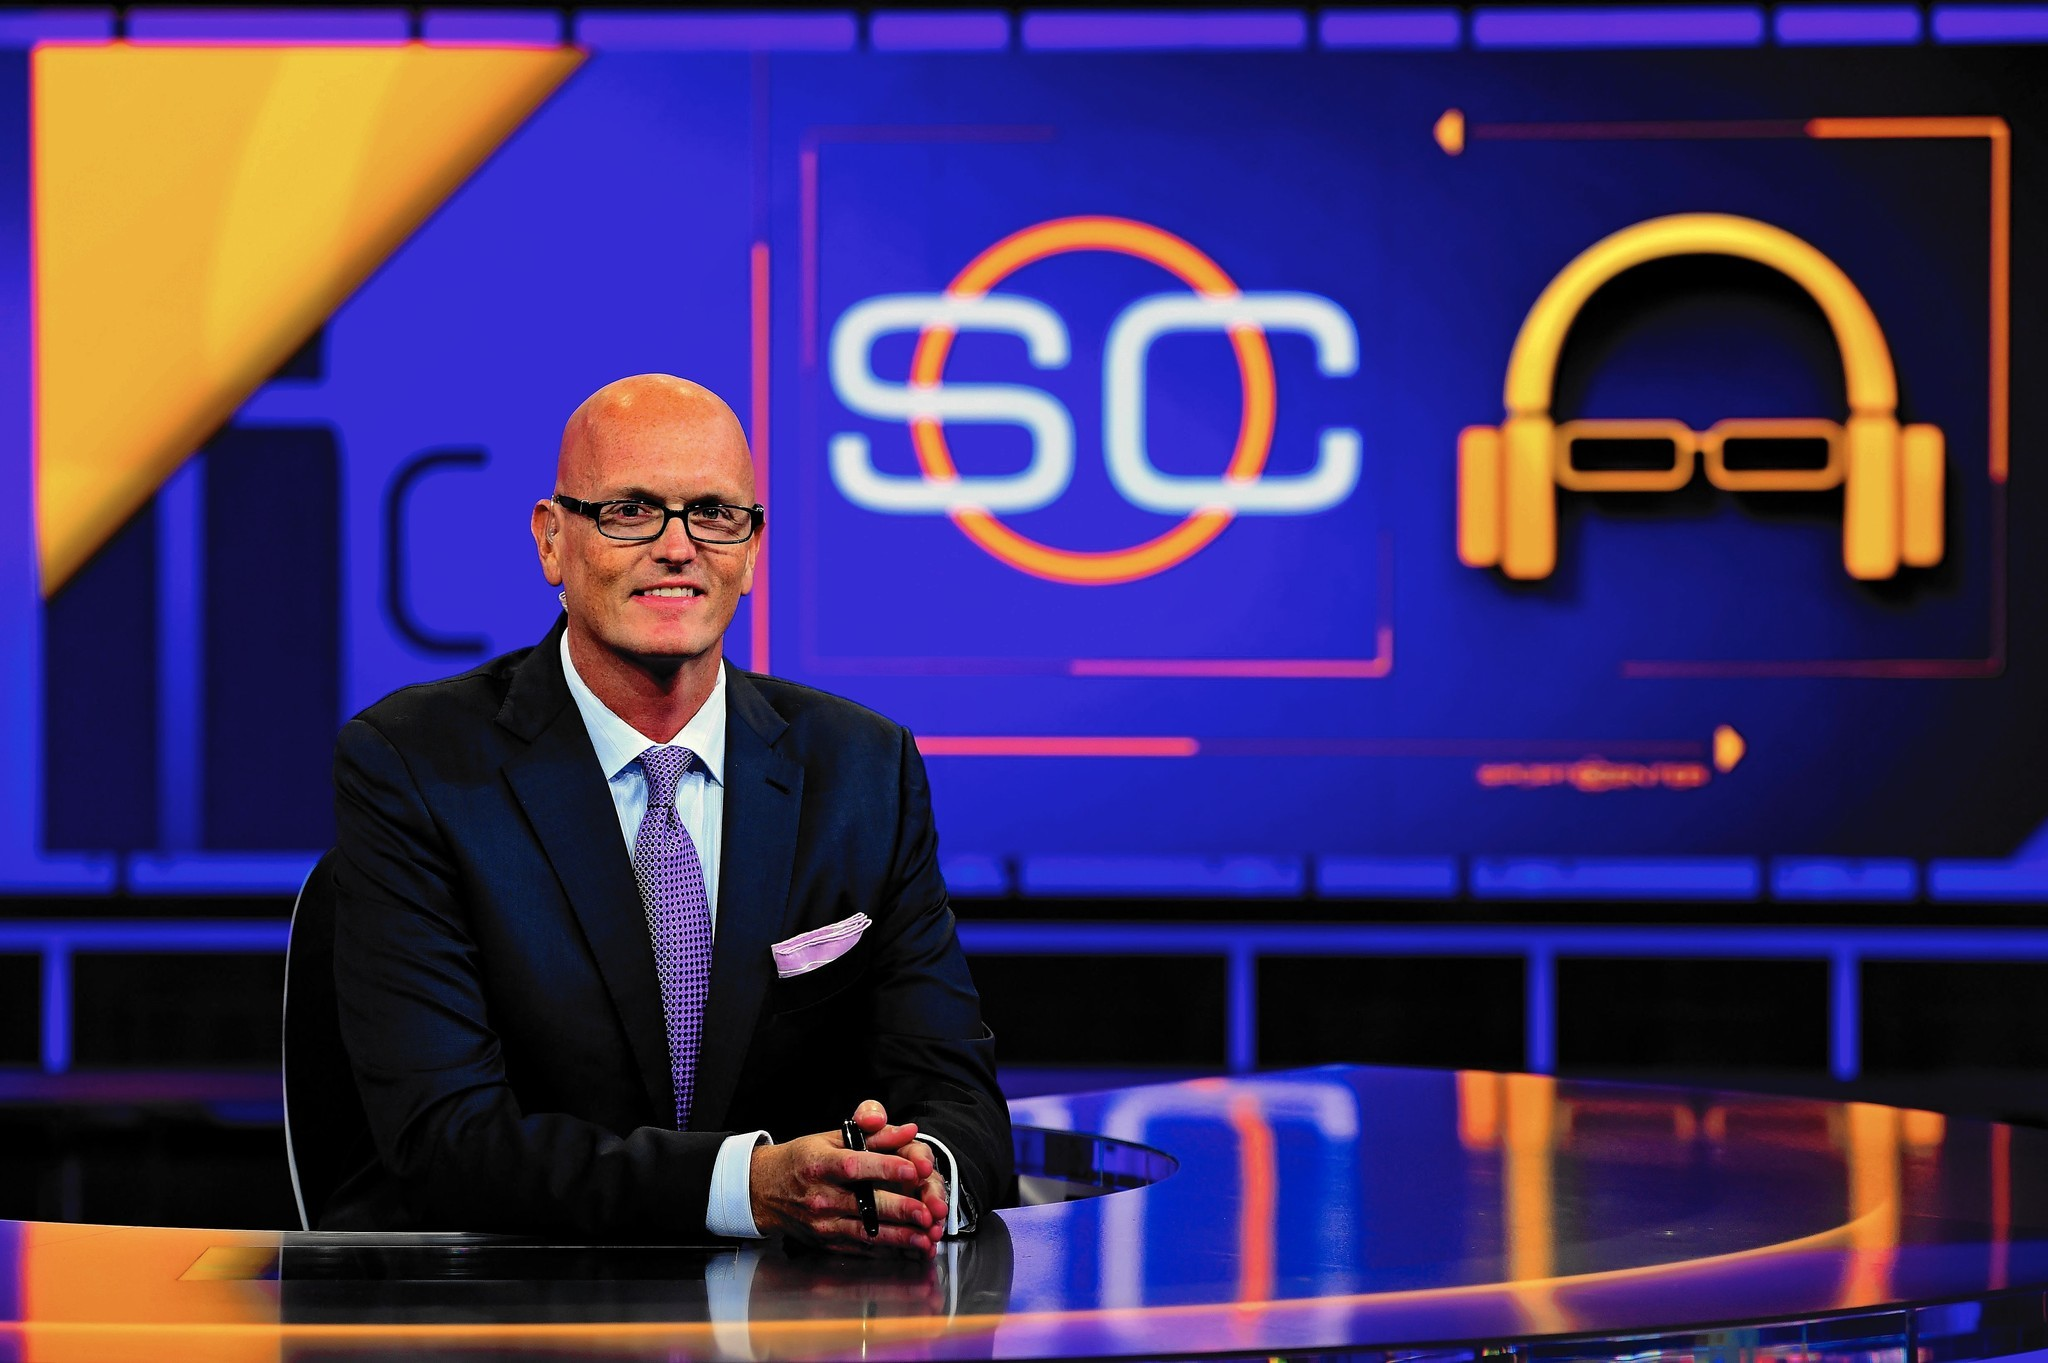 Espn Aims To Revitalize Sportscenter With Late Night